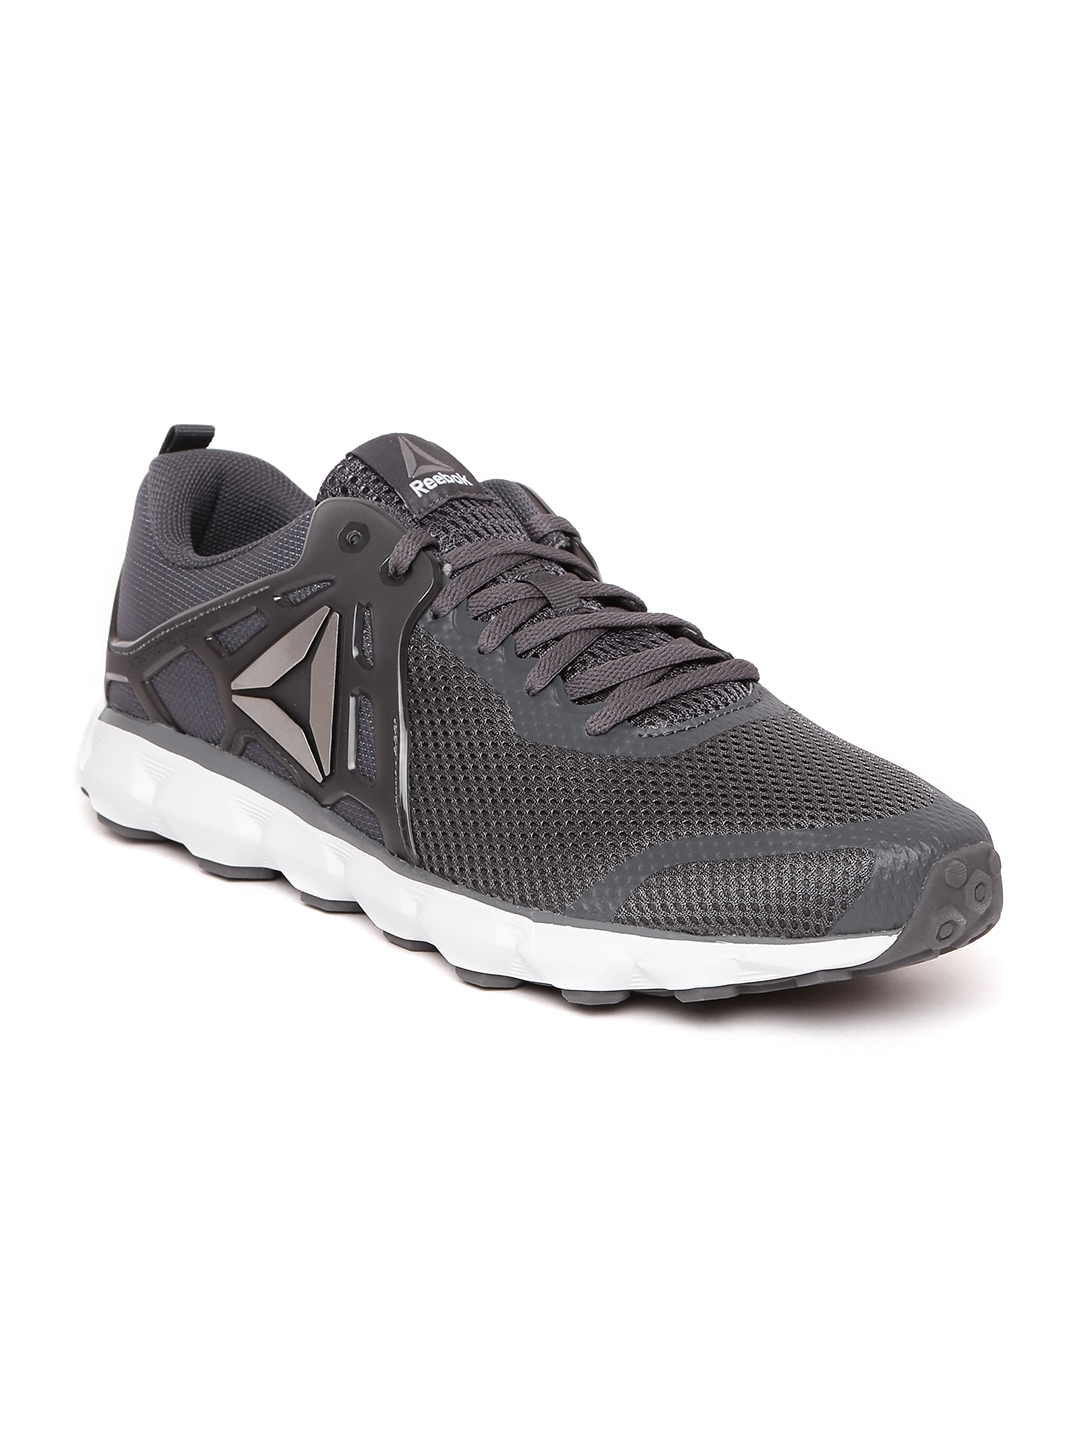 d8e534907569 Buy Reebok Men Grey Hexaffect 5.0 MTM Running Shoes - Sports Shoes ...